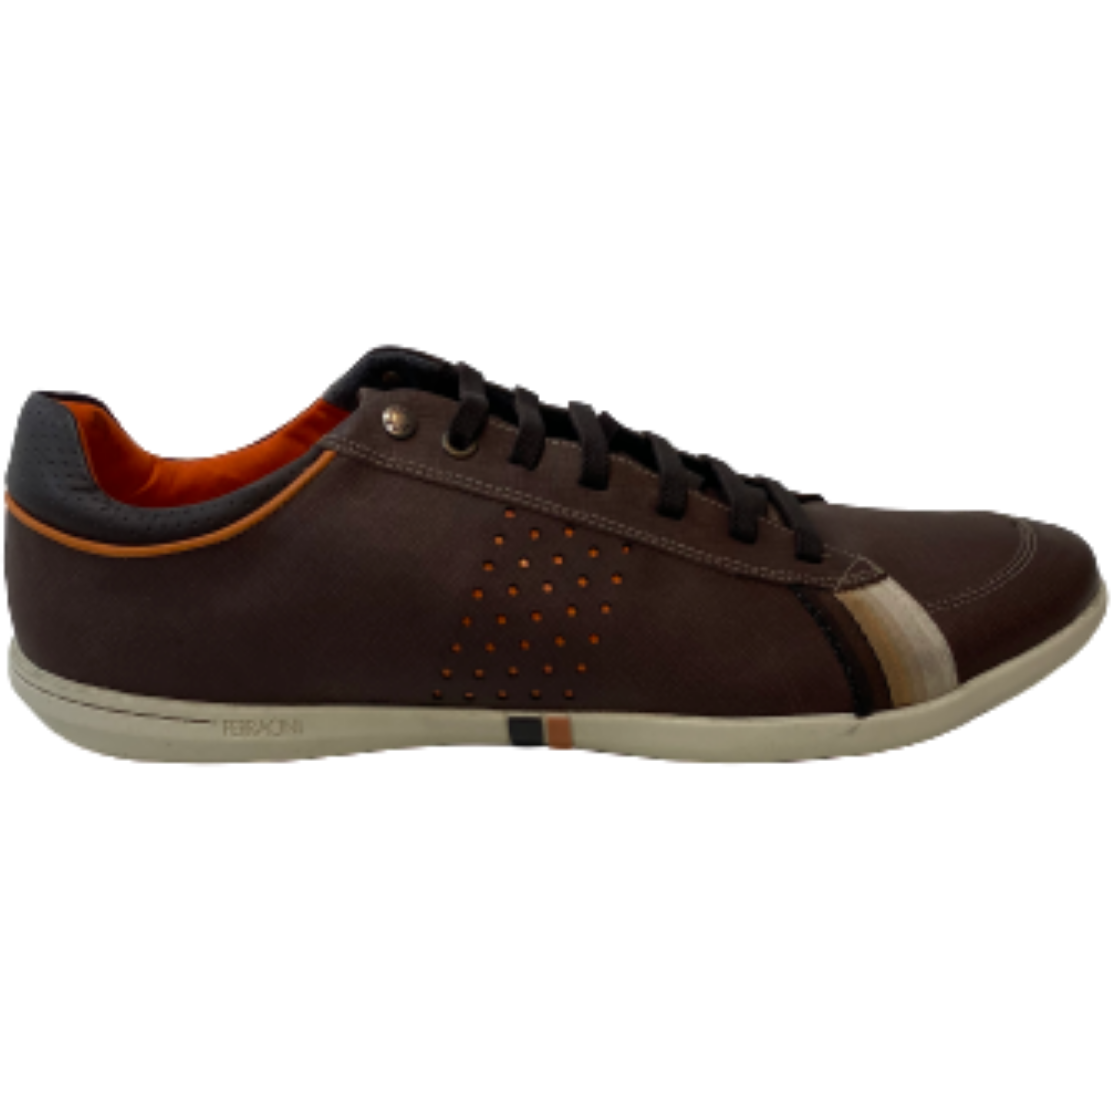 Ferracini Square Casual Shoes in Brown